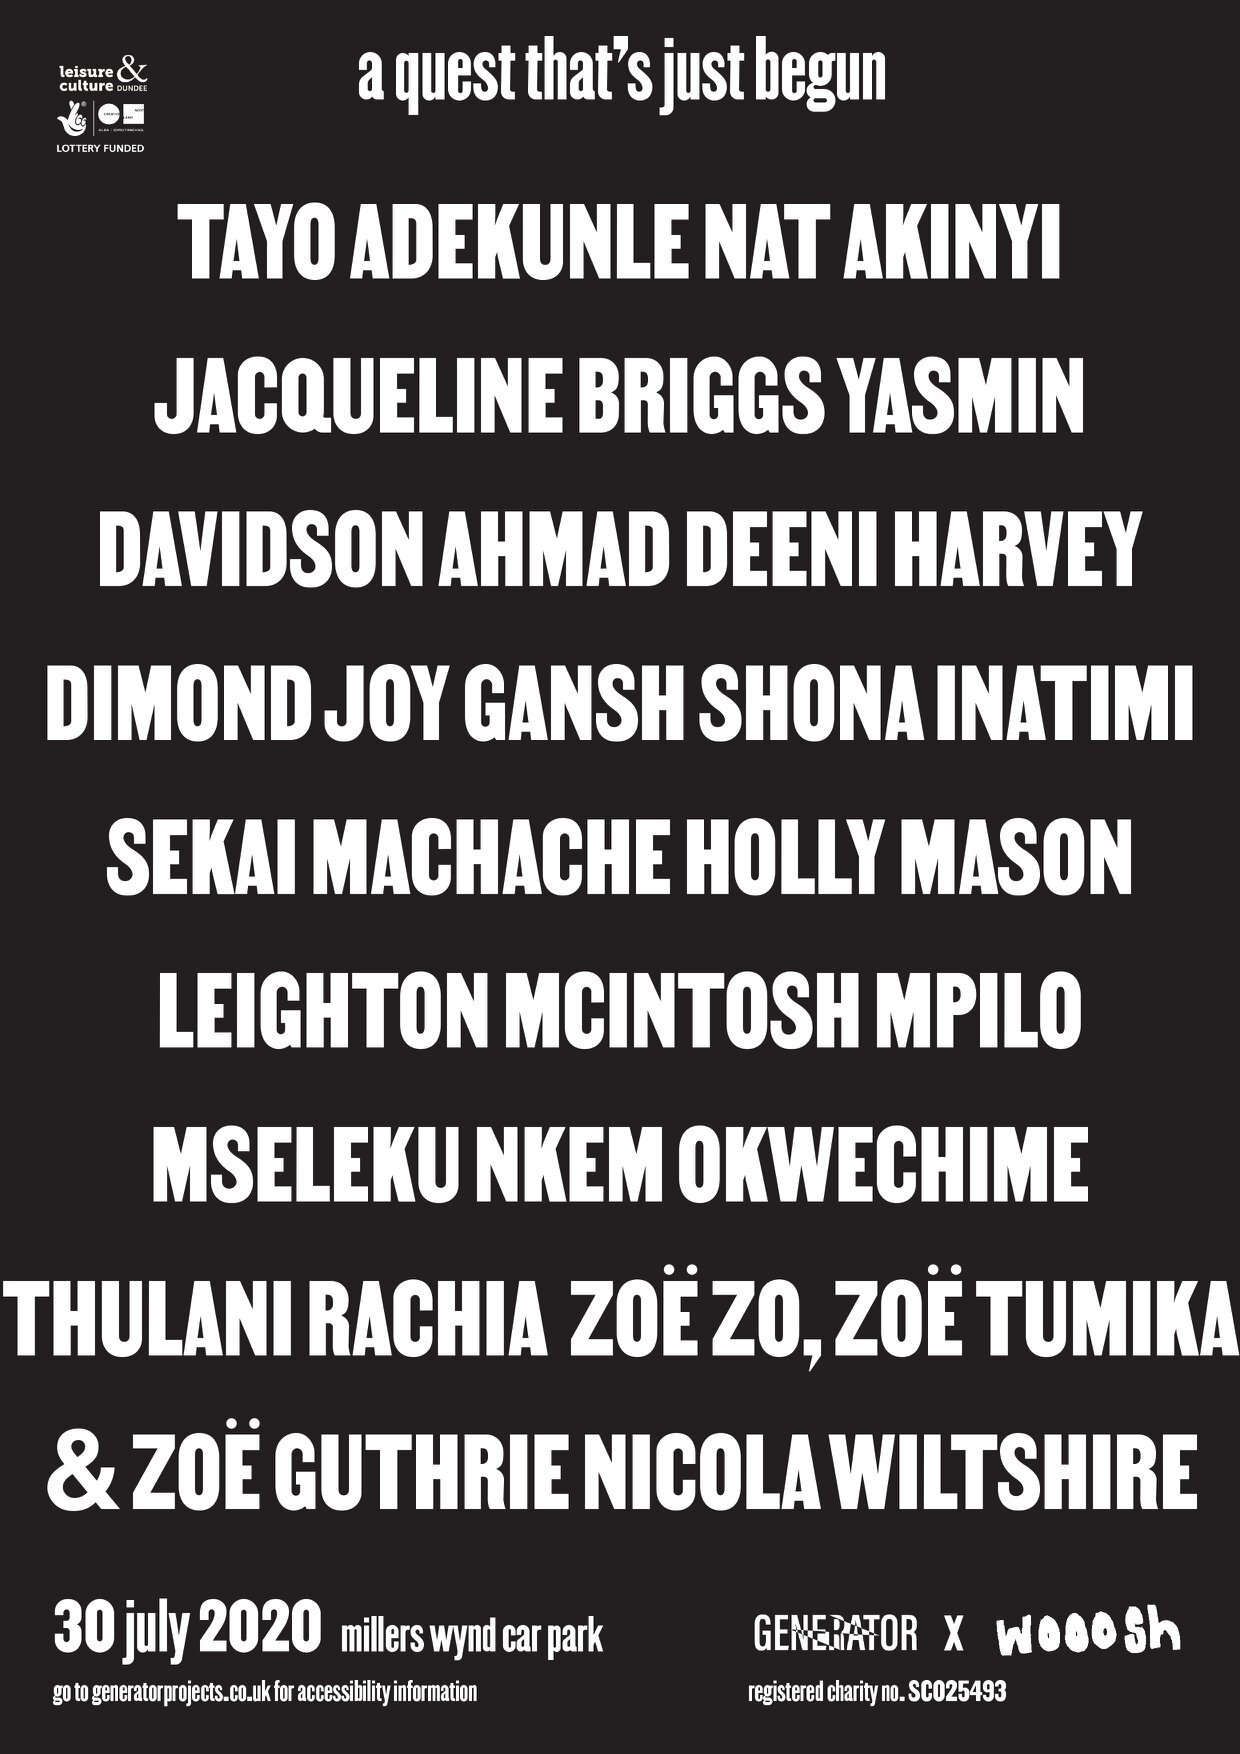 """A black poster. White text on it reads """"a quest that's just begun,"""" and lists the names of the artists: tayo adekunle, nat akinyi, jacqueline briggs, yasmin davidson, ahmad deeni, harvey dimond, joy gansh, shona inatimi, sekai machache, holly mason, leighton mcintosh, mpilo mseleku, nkem okwechime, thulani rachia, zoe zo, zoe tumika, zoe guthrie, and nicola wiltshire. the poster advertises that the event is on July 30th 2020 in millers wynd car park."""